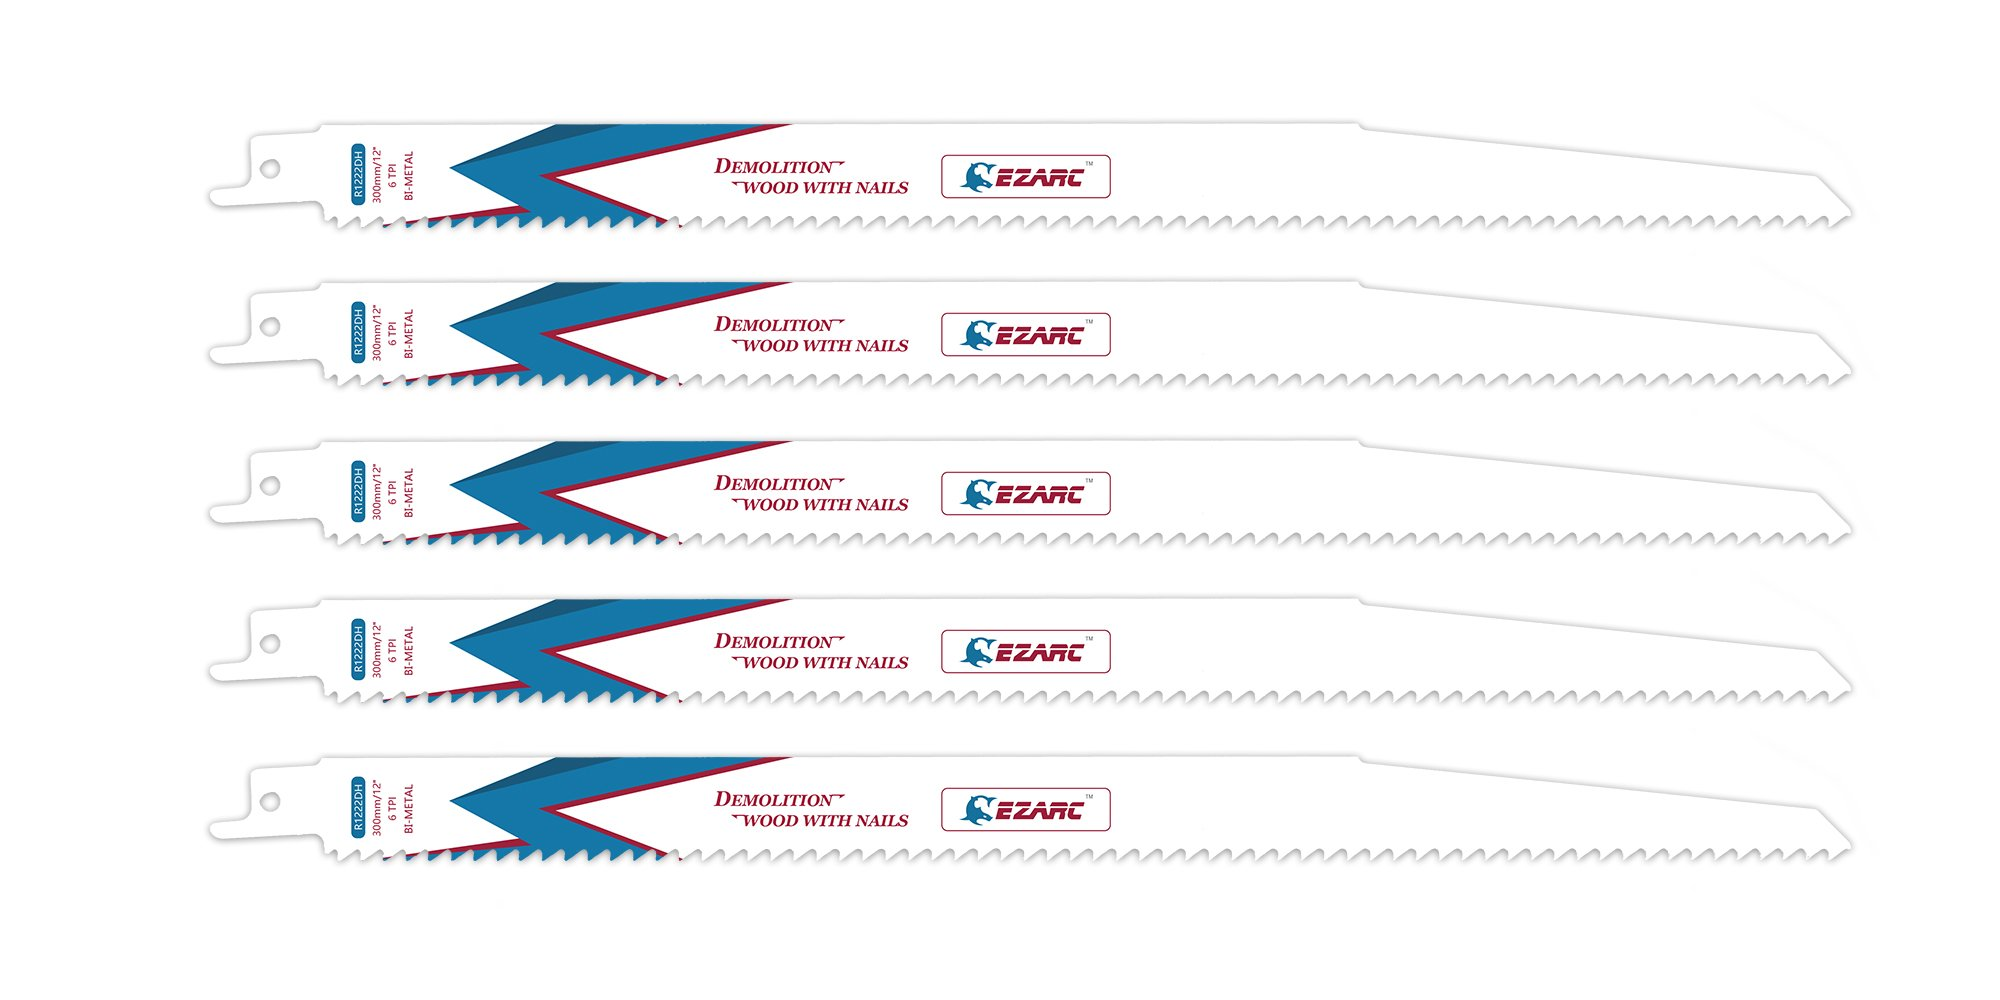 EZARC Reciprocating Saw Blade Nail Embedded Wood Demolition 12-Inch 6TPI R1222DH (5-Pack)